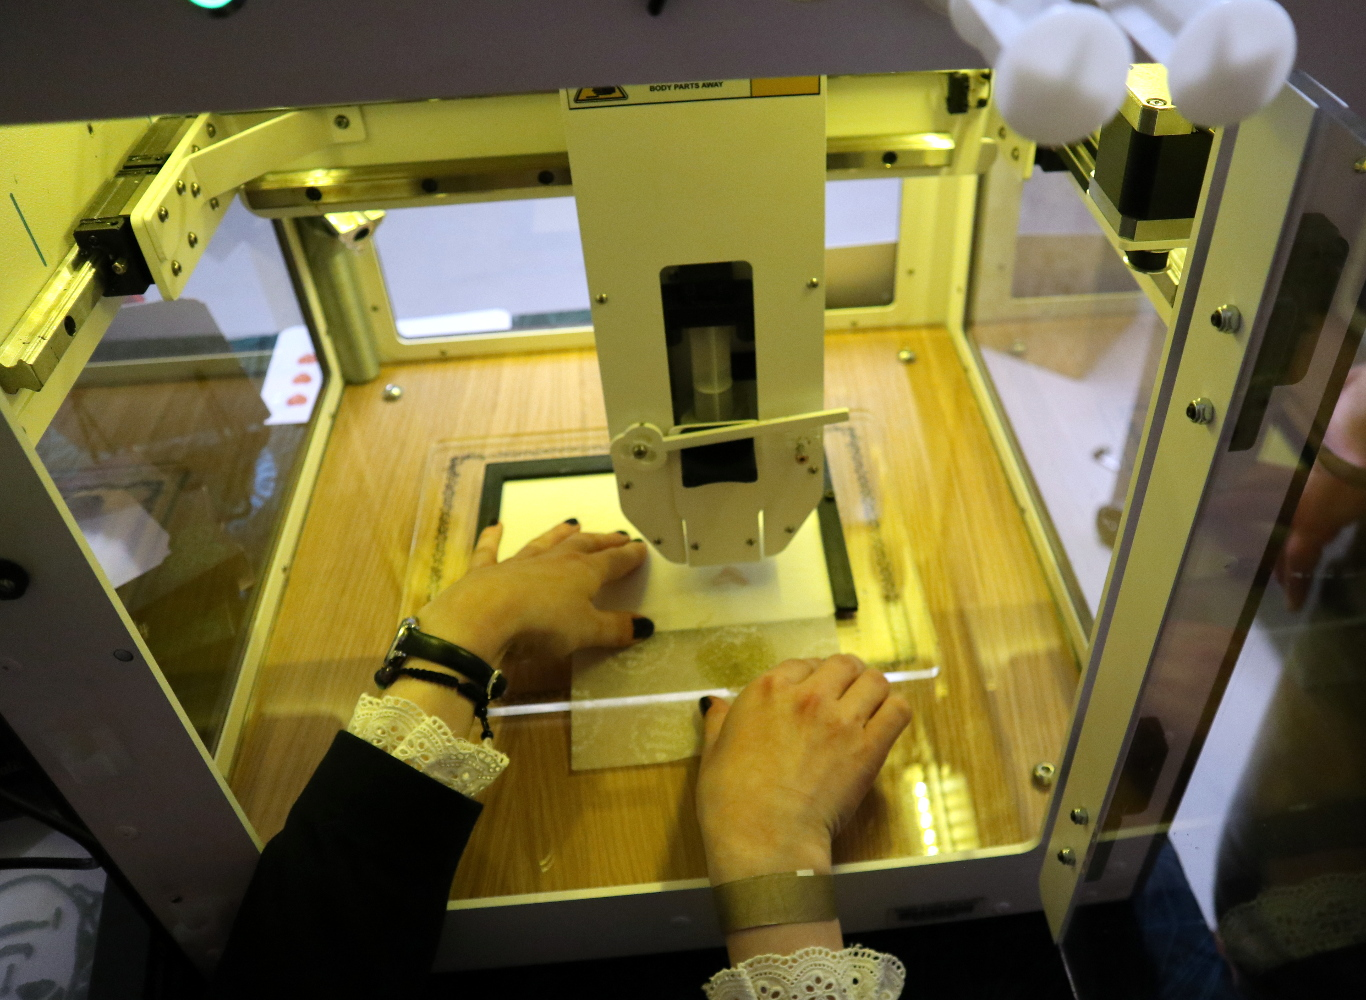 D Printing Exhibition Nec : This british d printing meetup is on the rise hackaday